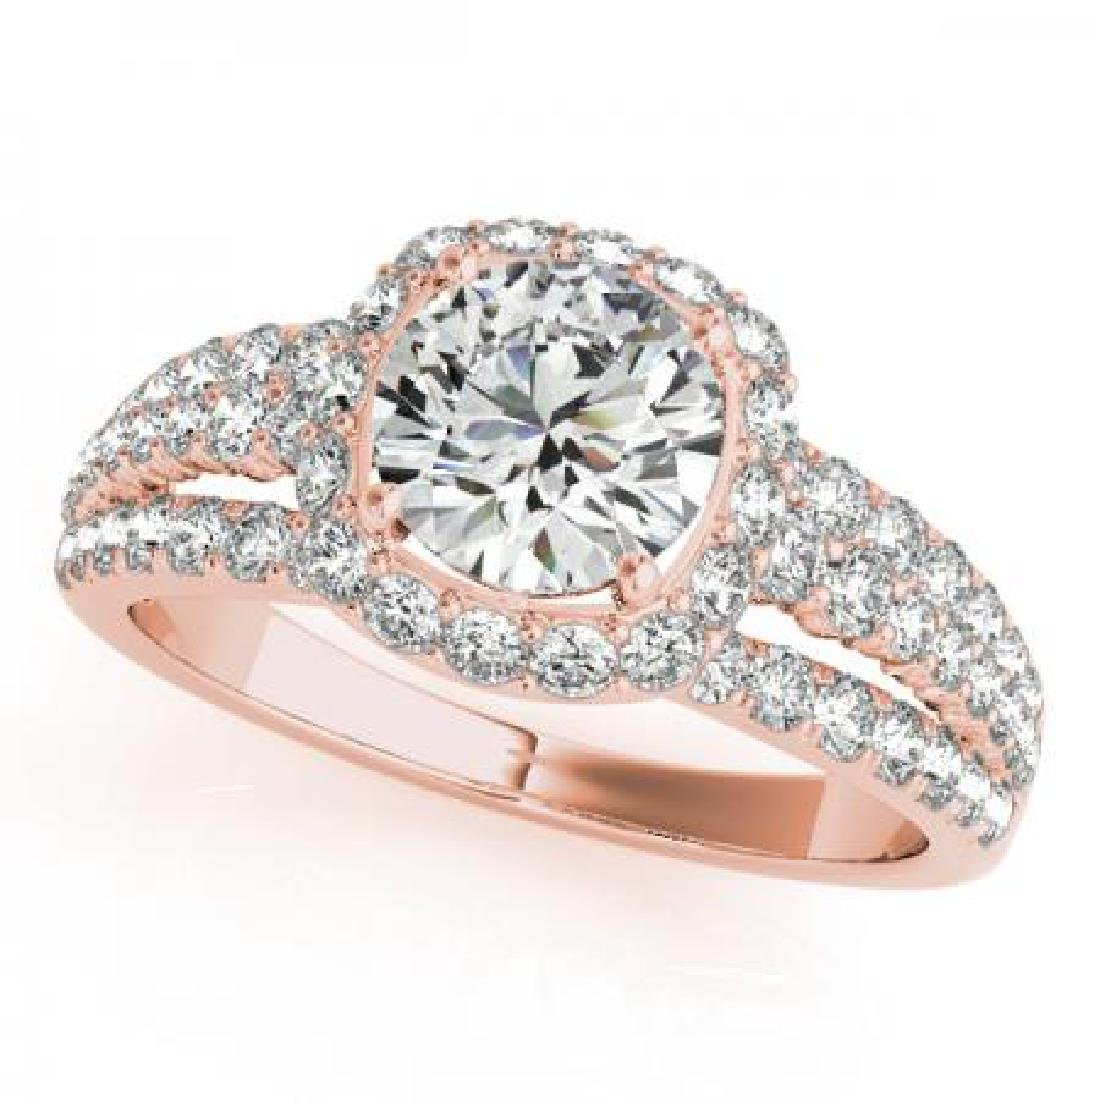 CERTIFIED 18K ROSE GOLD 1.37 CT G-H/VS-SI1 DIAMOND HALO